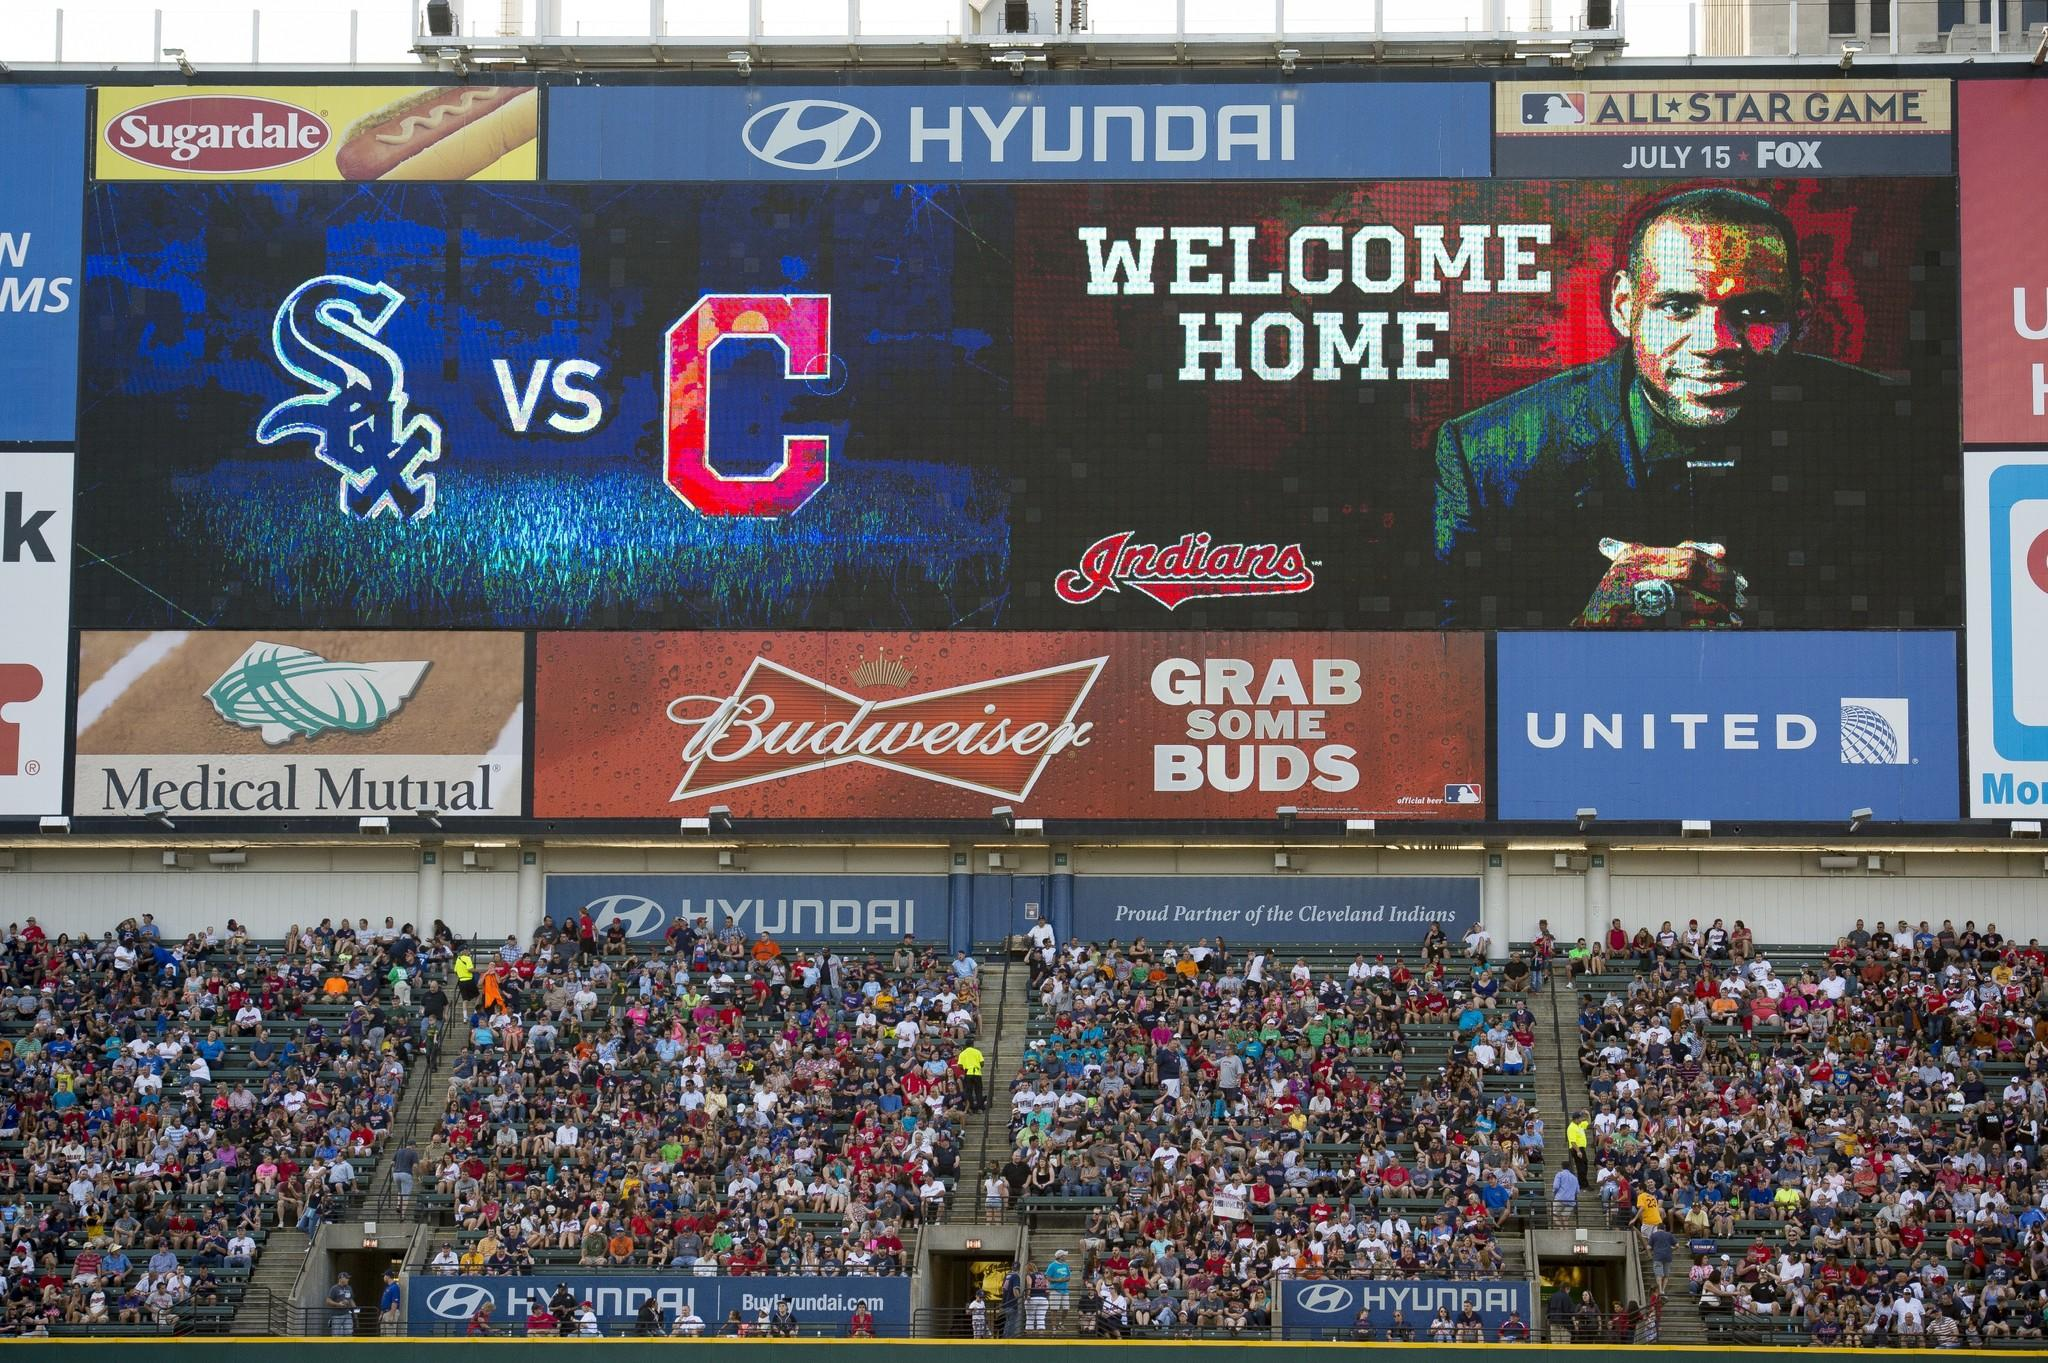 The Cleveland Indians show their support for LeBron James with a welcome home message on the scoreboard.